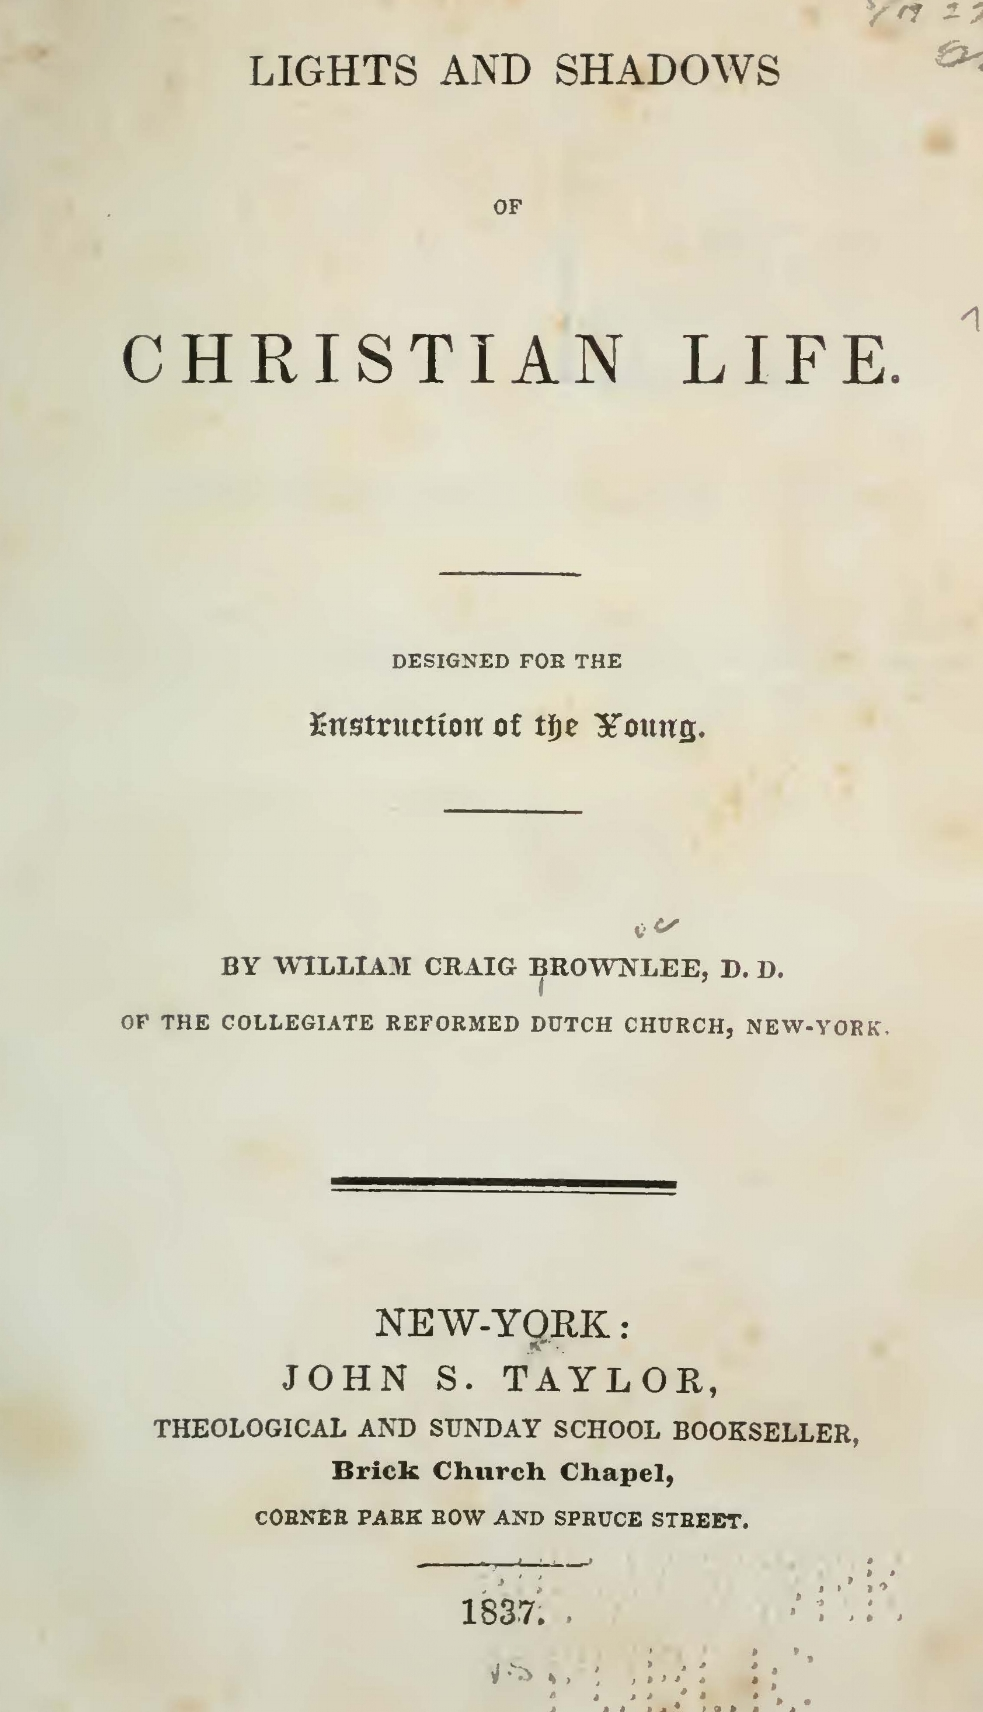 Brownlee, William Craig, Lights and Shadows of Christian Life Title Page.jpg